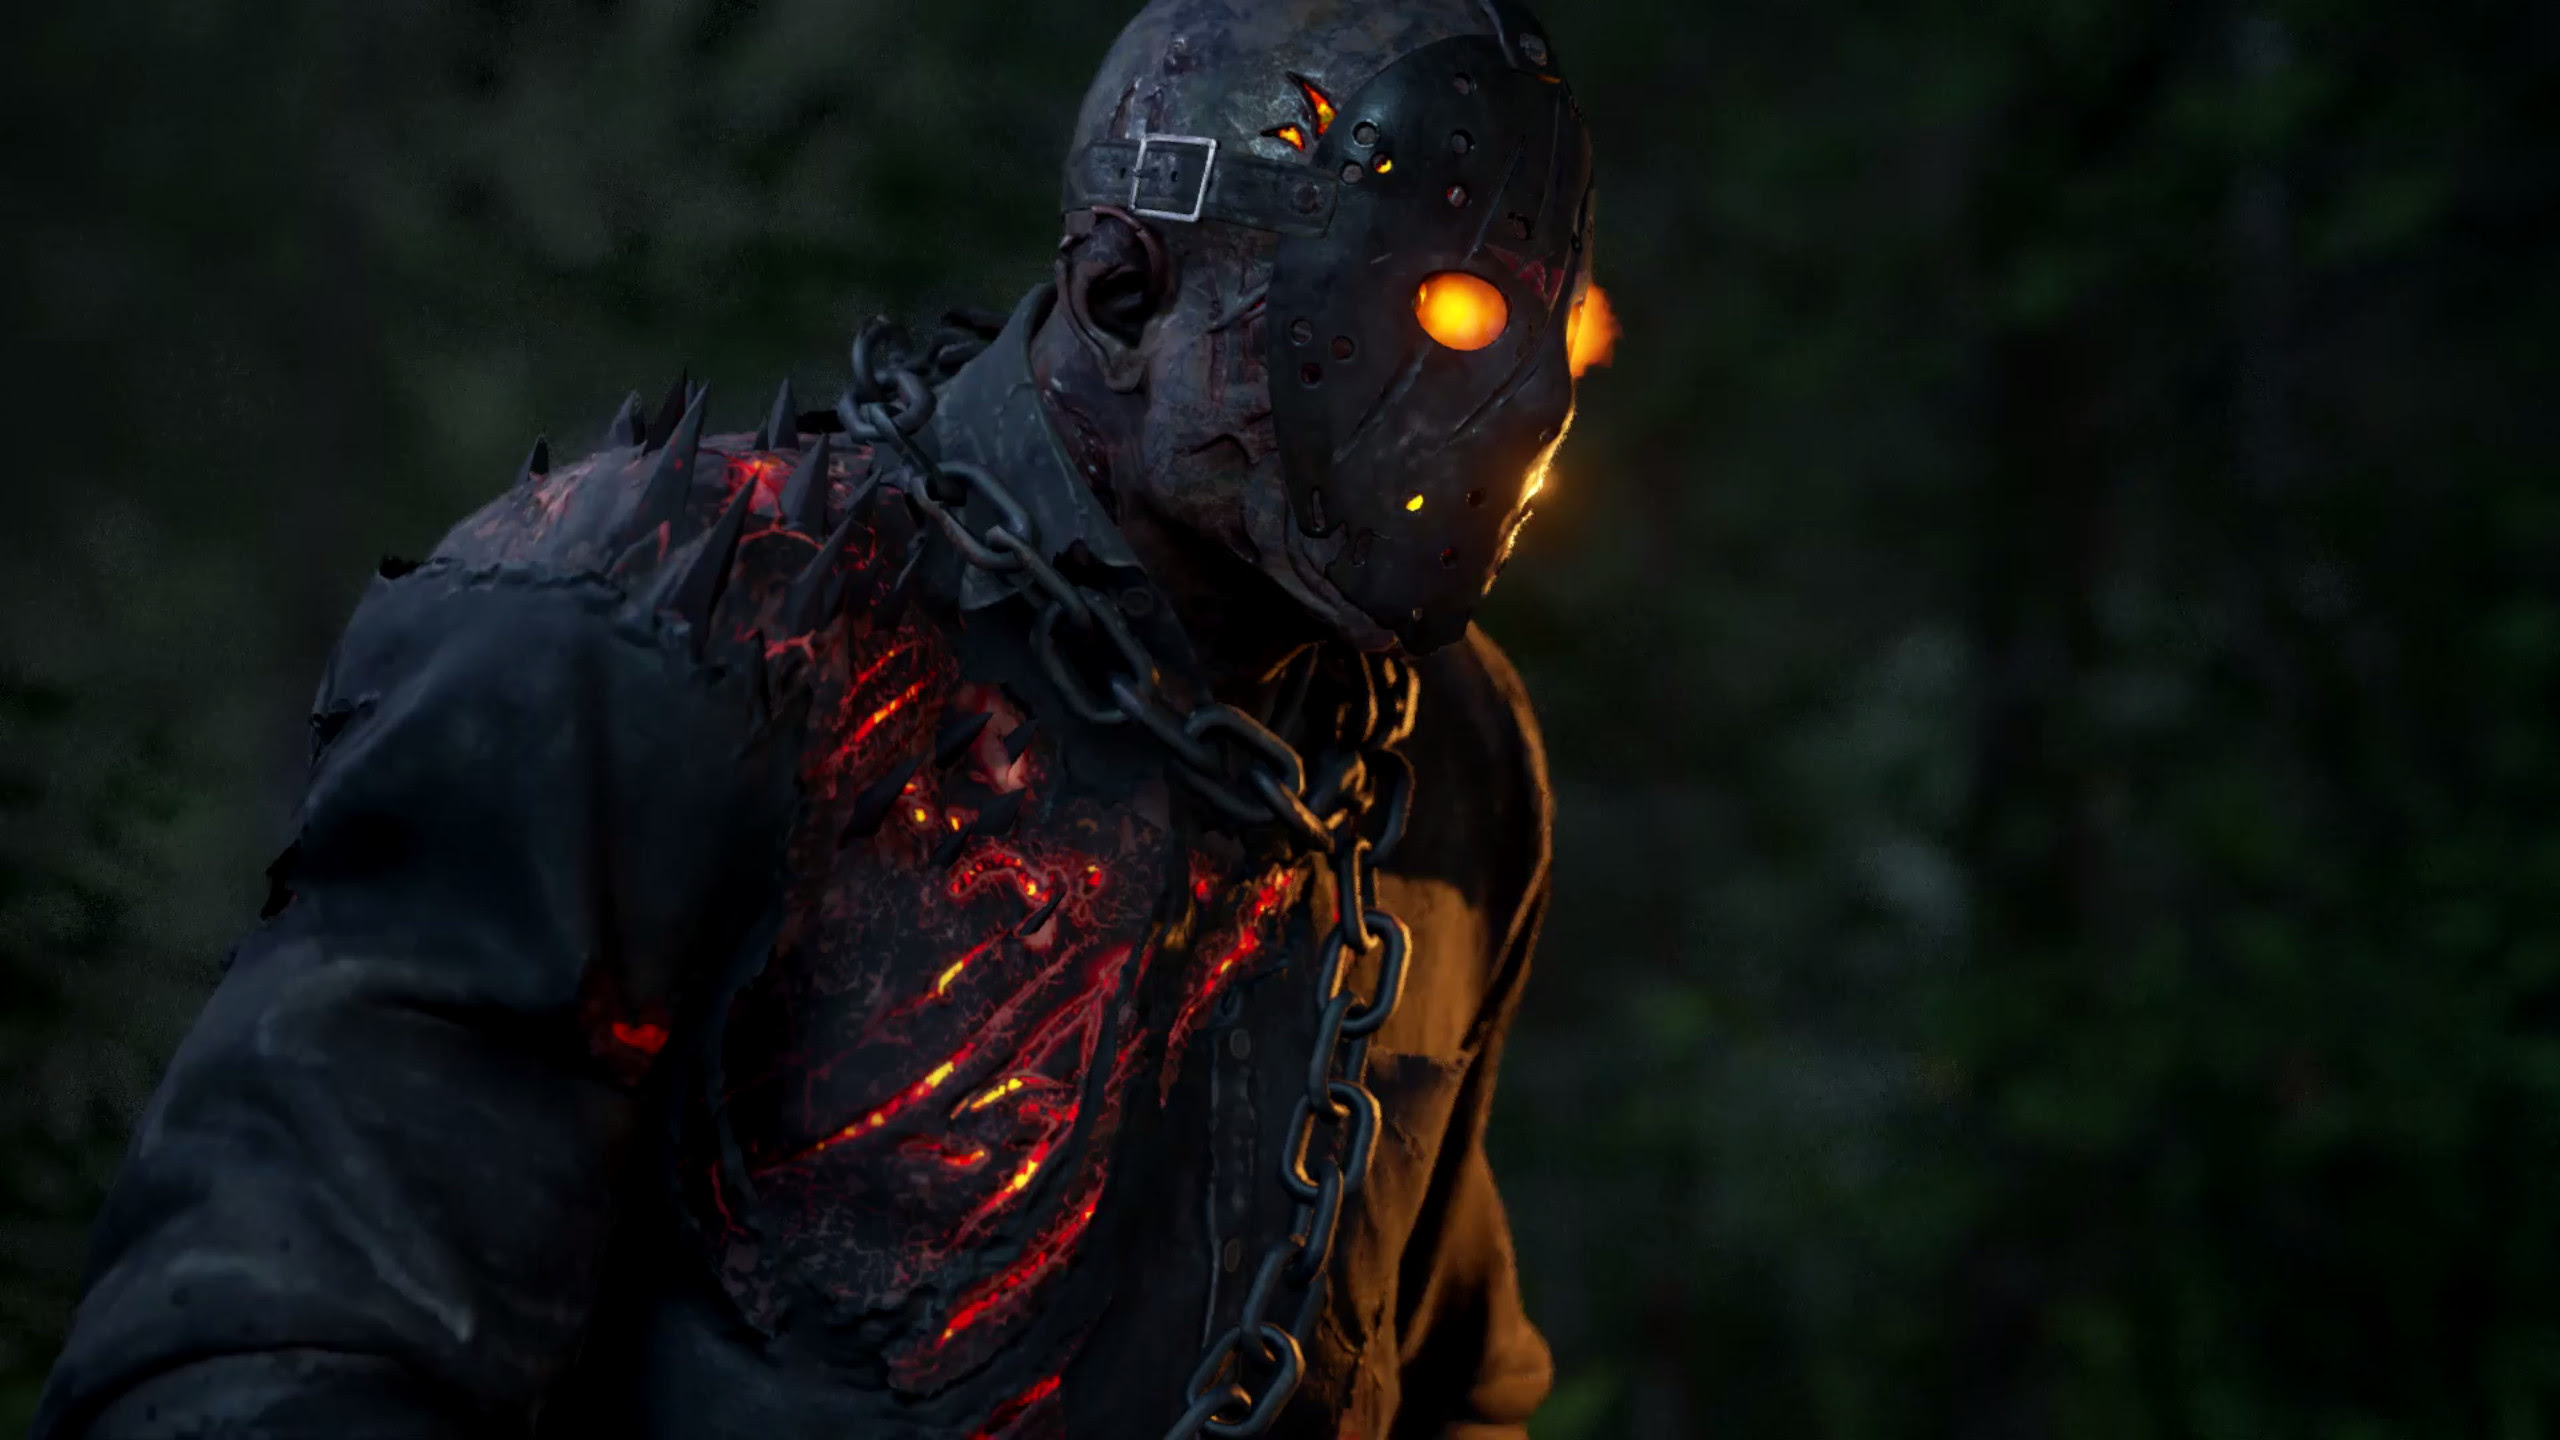 Friday The 13th Pictures Wallpaper 81 Images